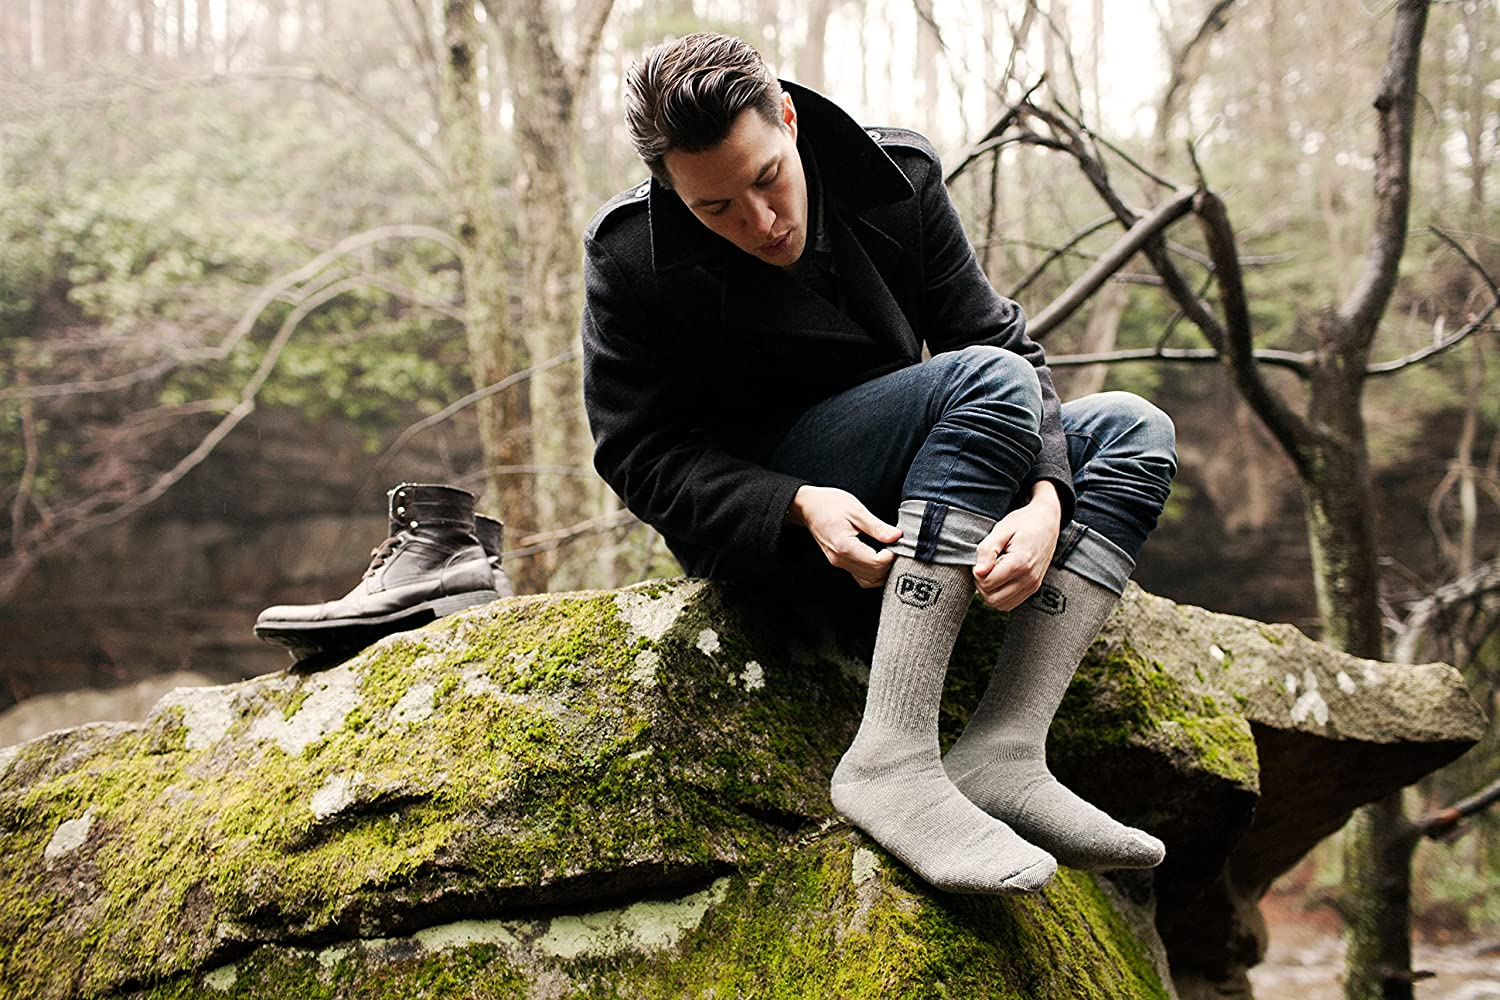 PEOPLE SOCKS Mens Womens Merino wool crew socks 4 pairs 71/% premium with Arch support Made in USA